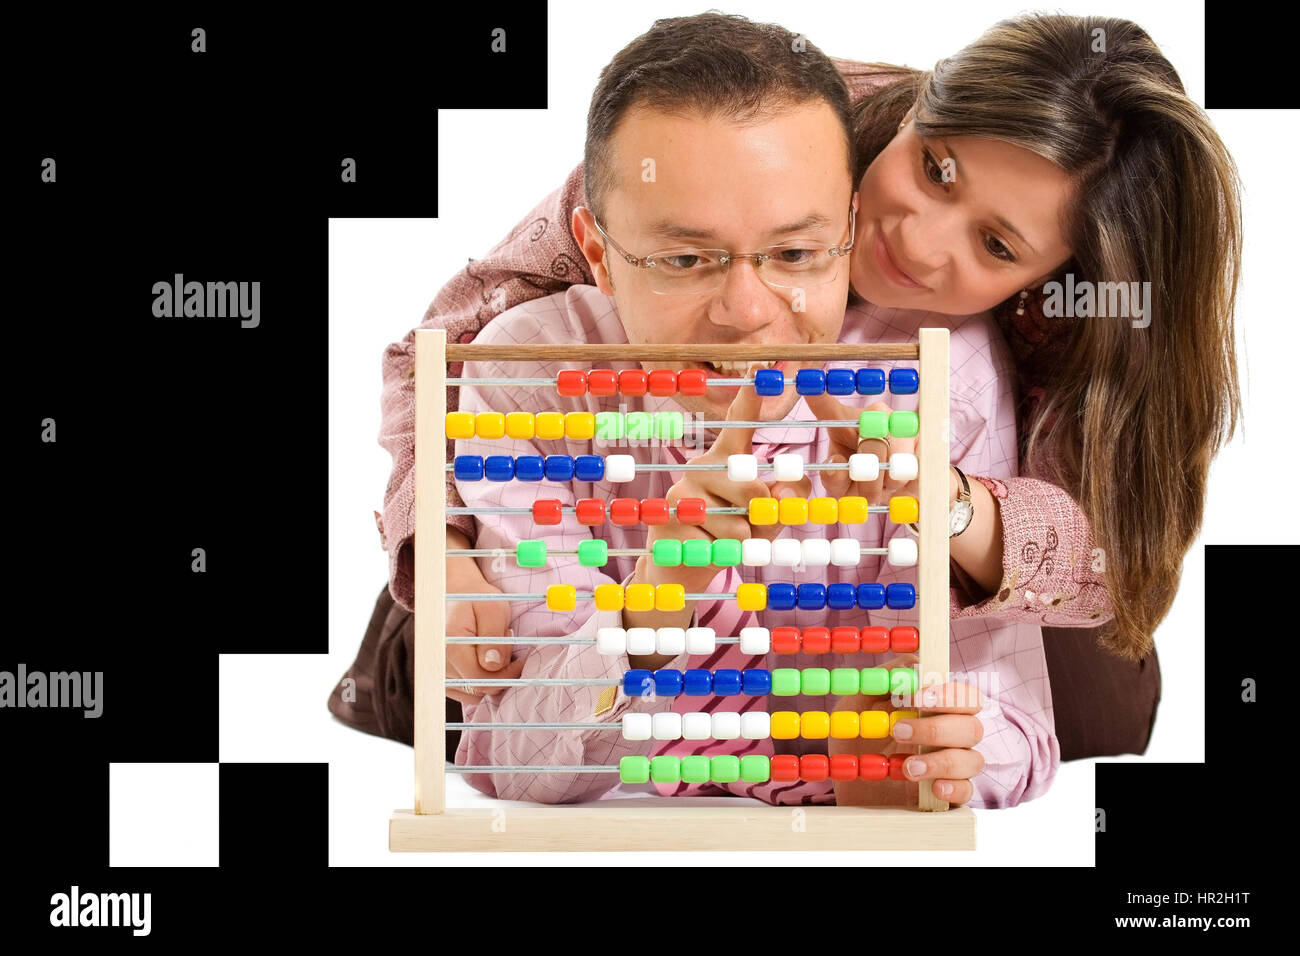 couple of business accountants playing with an abacus - Stock Image